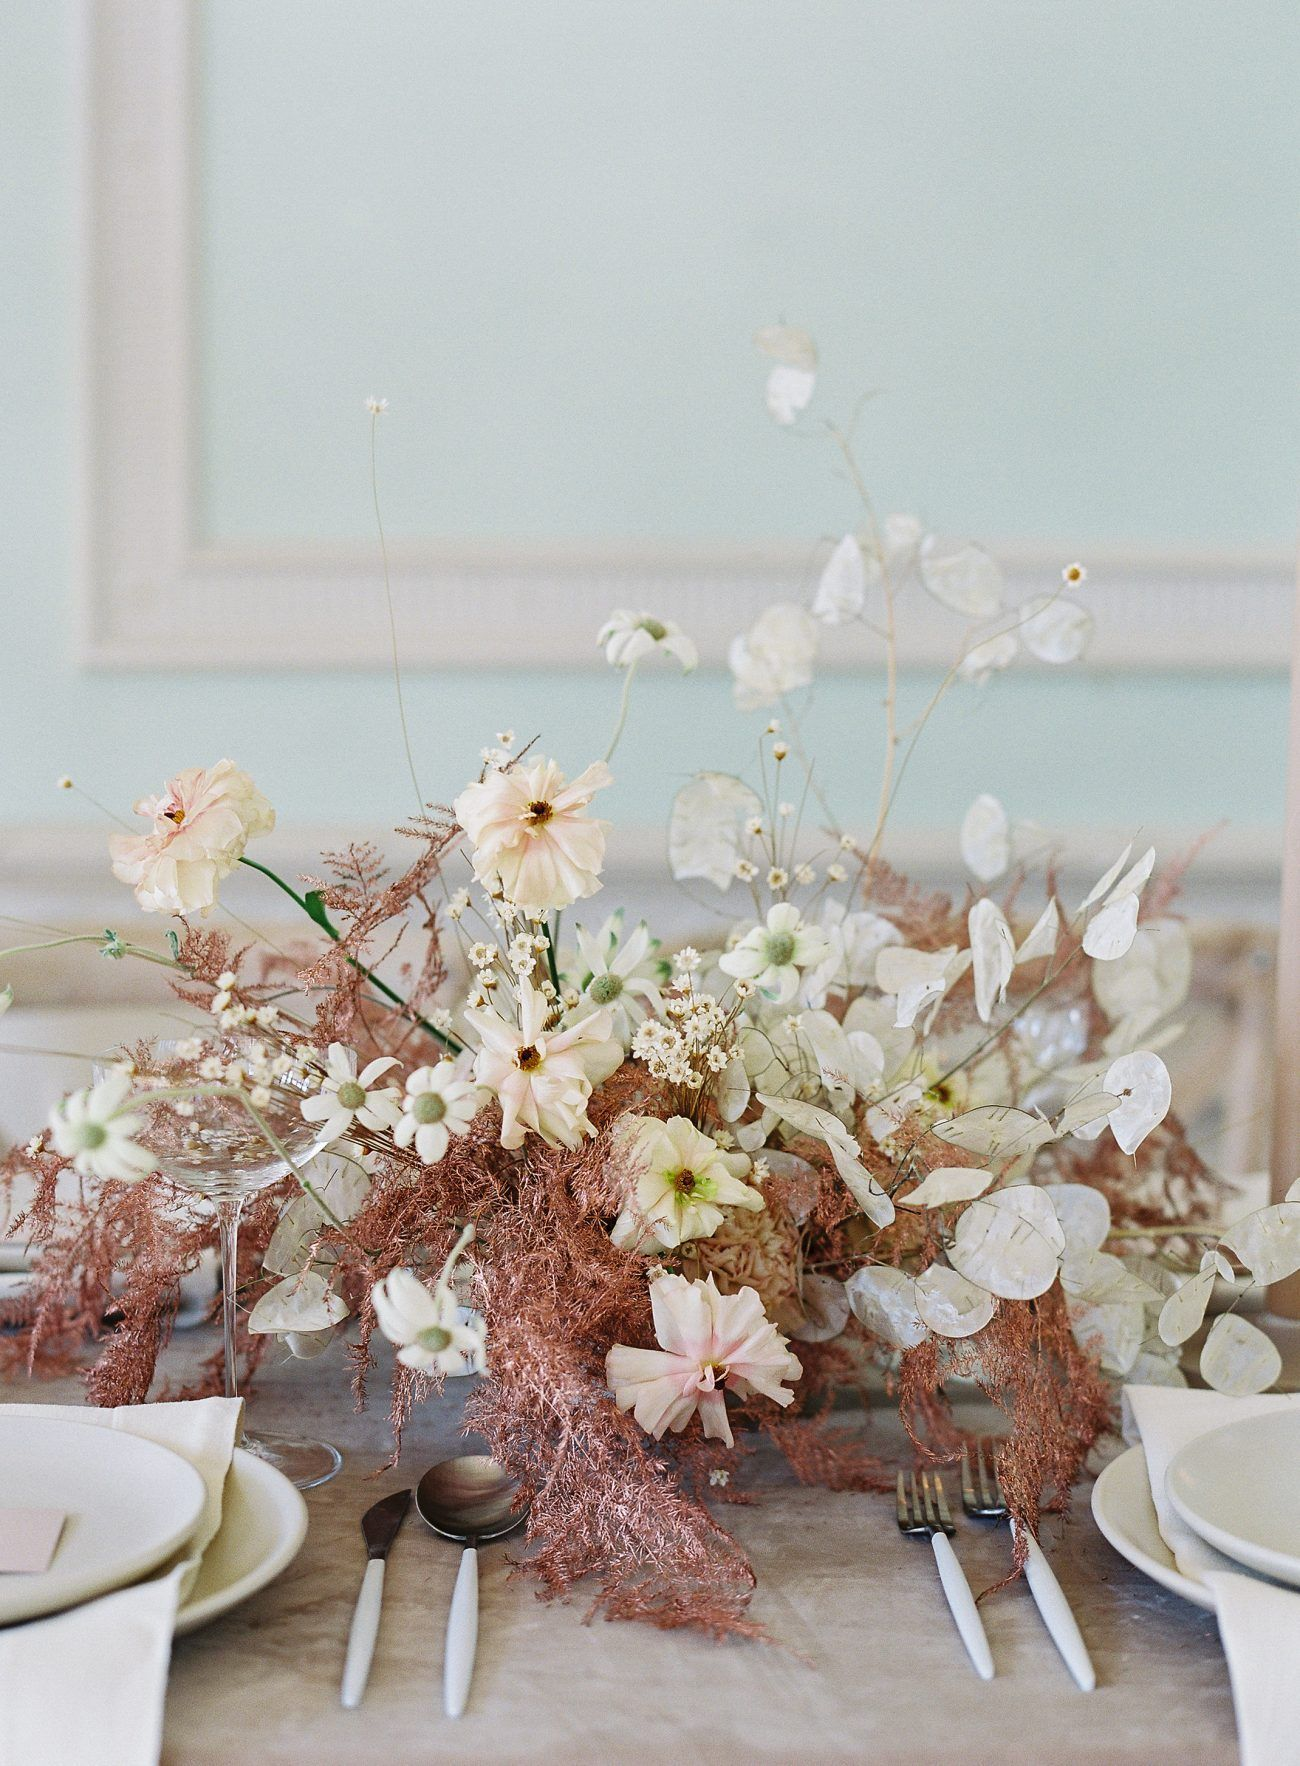 25 Best Wedding Centerpieces For A Day Brimming With Elegant Charm